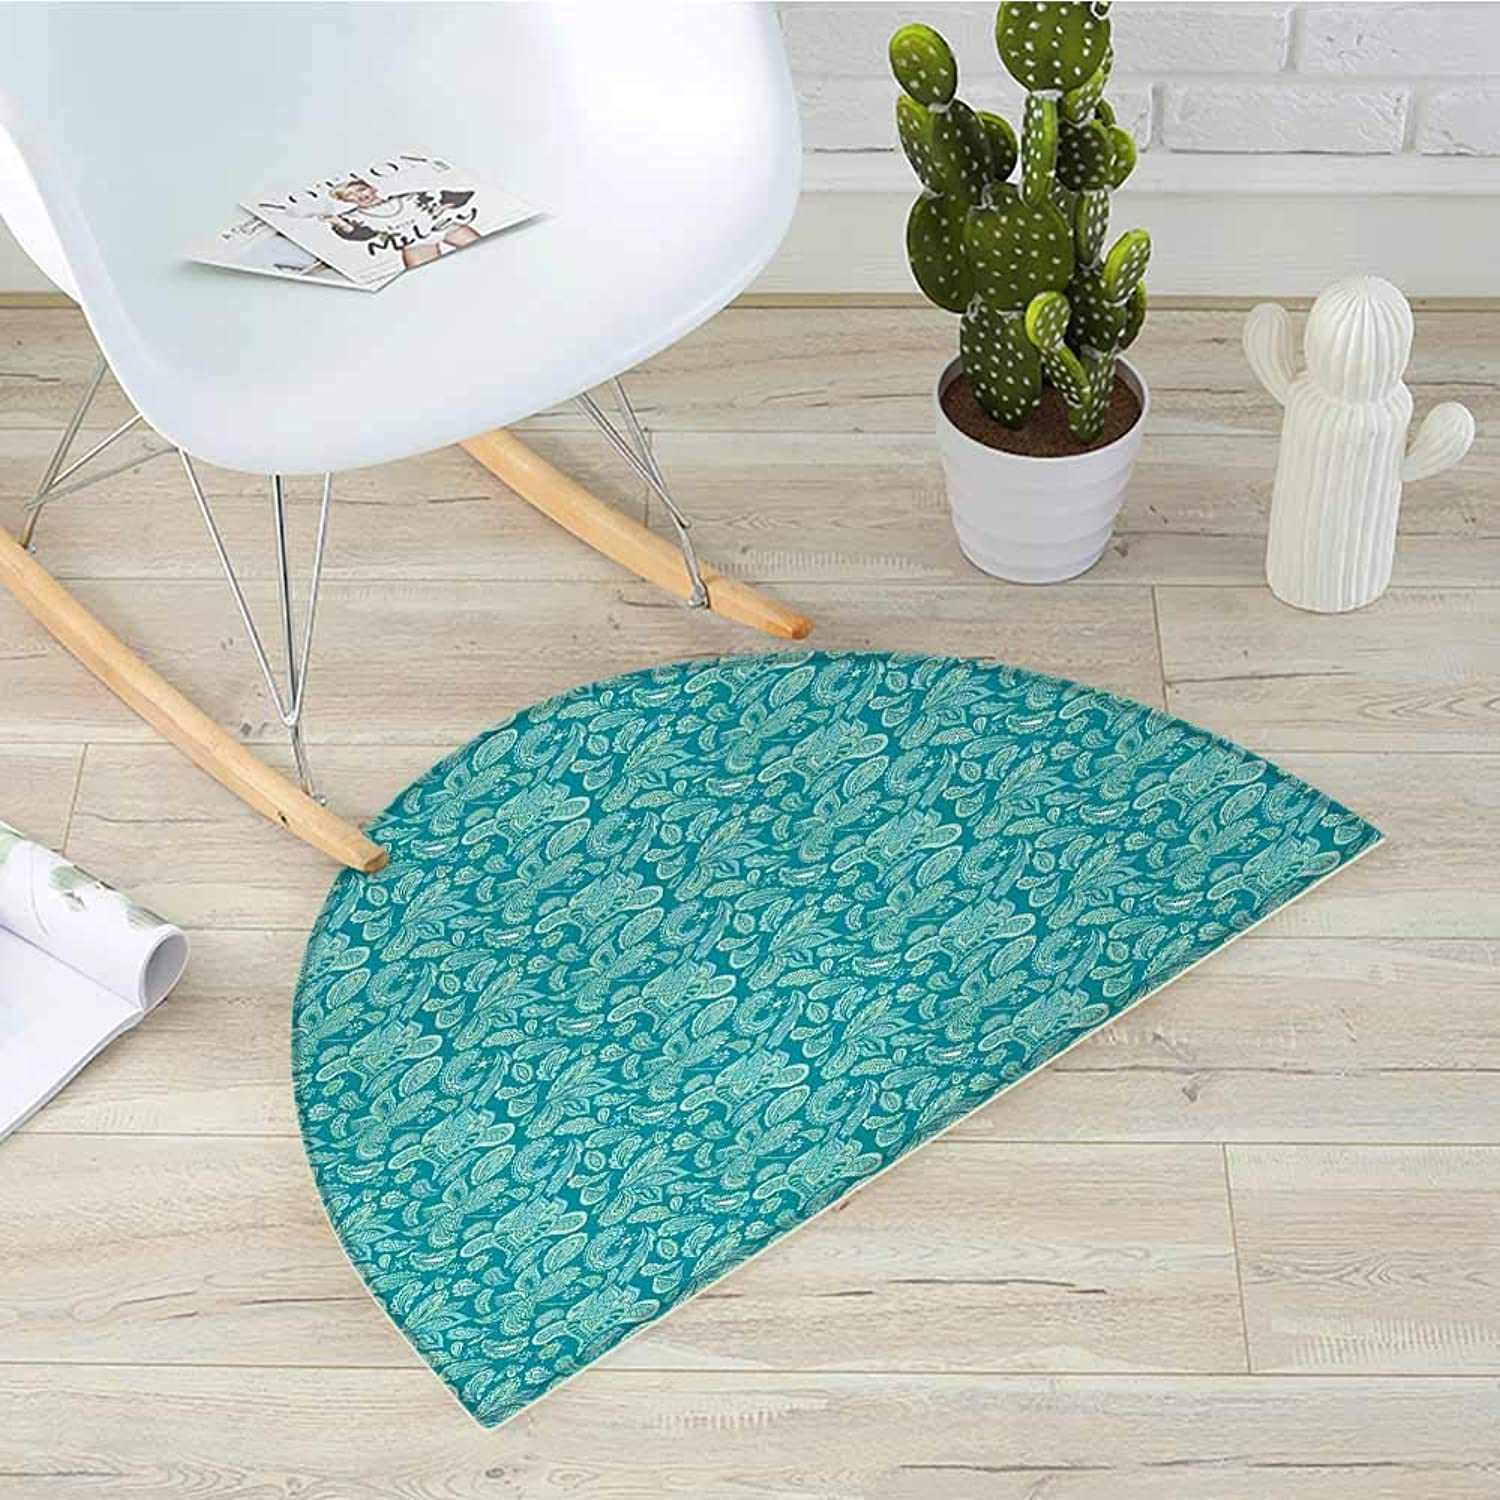 Ethnic Half Round Door mats Leaves Vintage Pastel Paisley Old Fashioned Historical Motifs in bluee Shades Bathroom Mat H 39.3  xD 59  Turquoise Teal